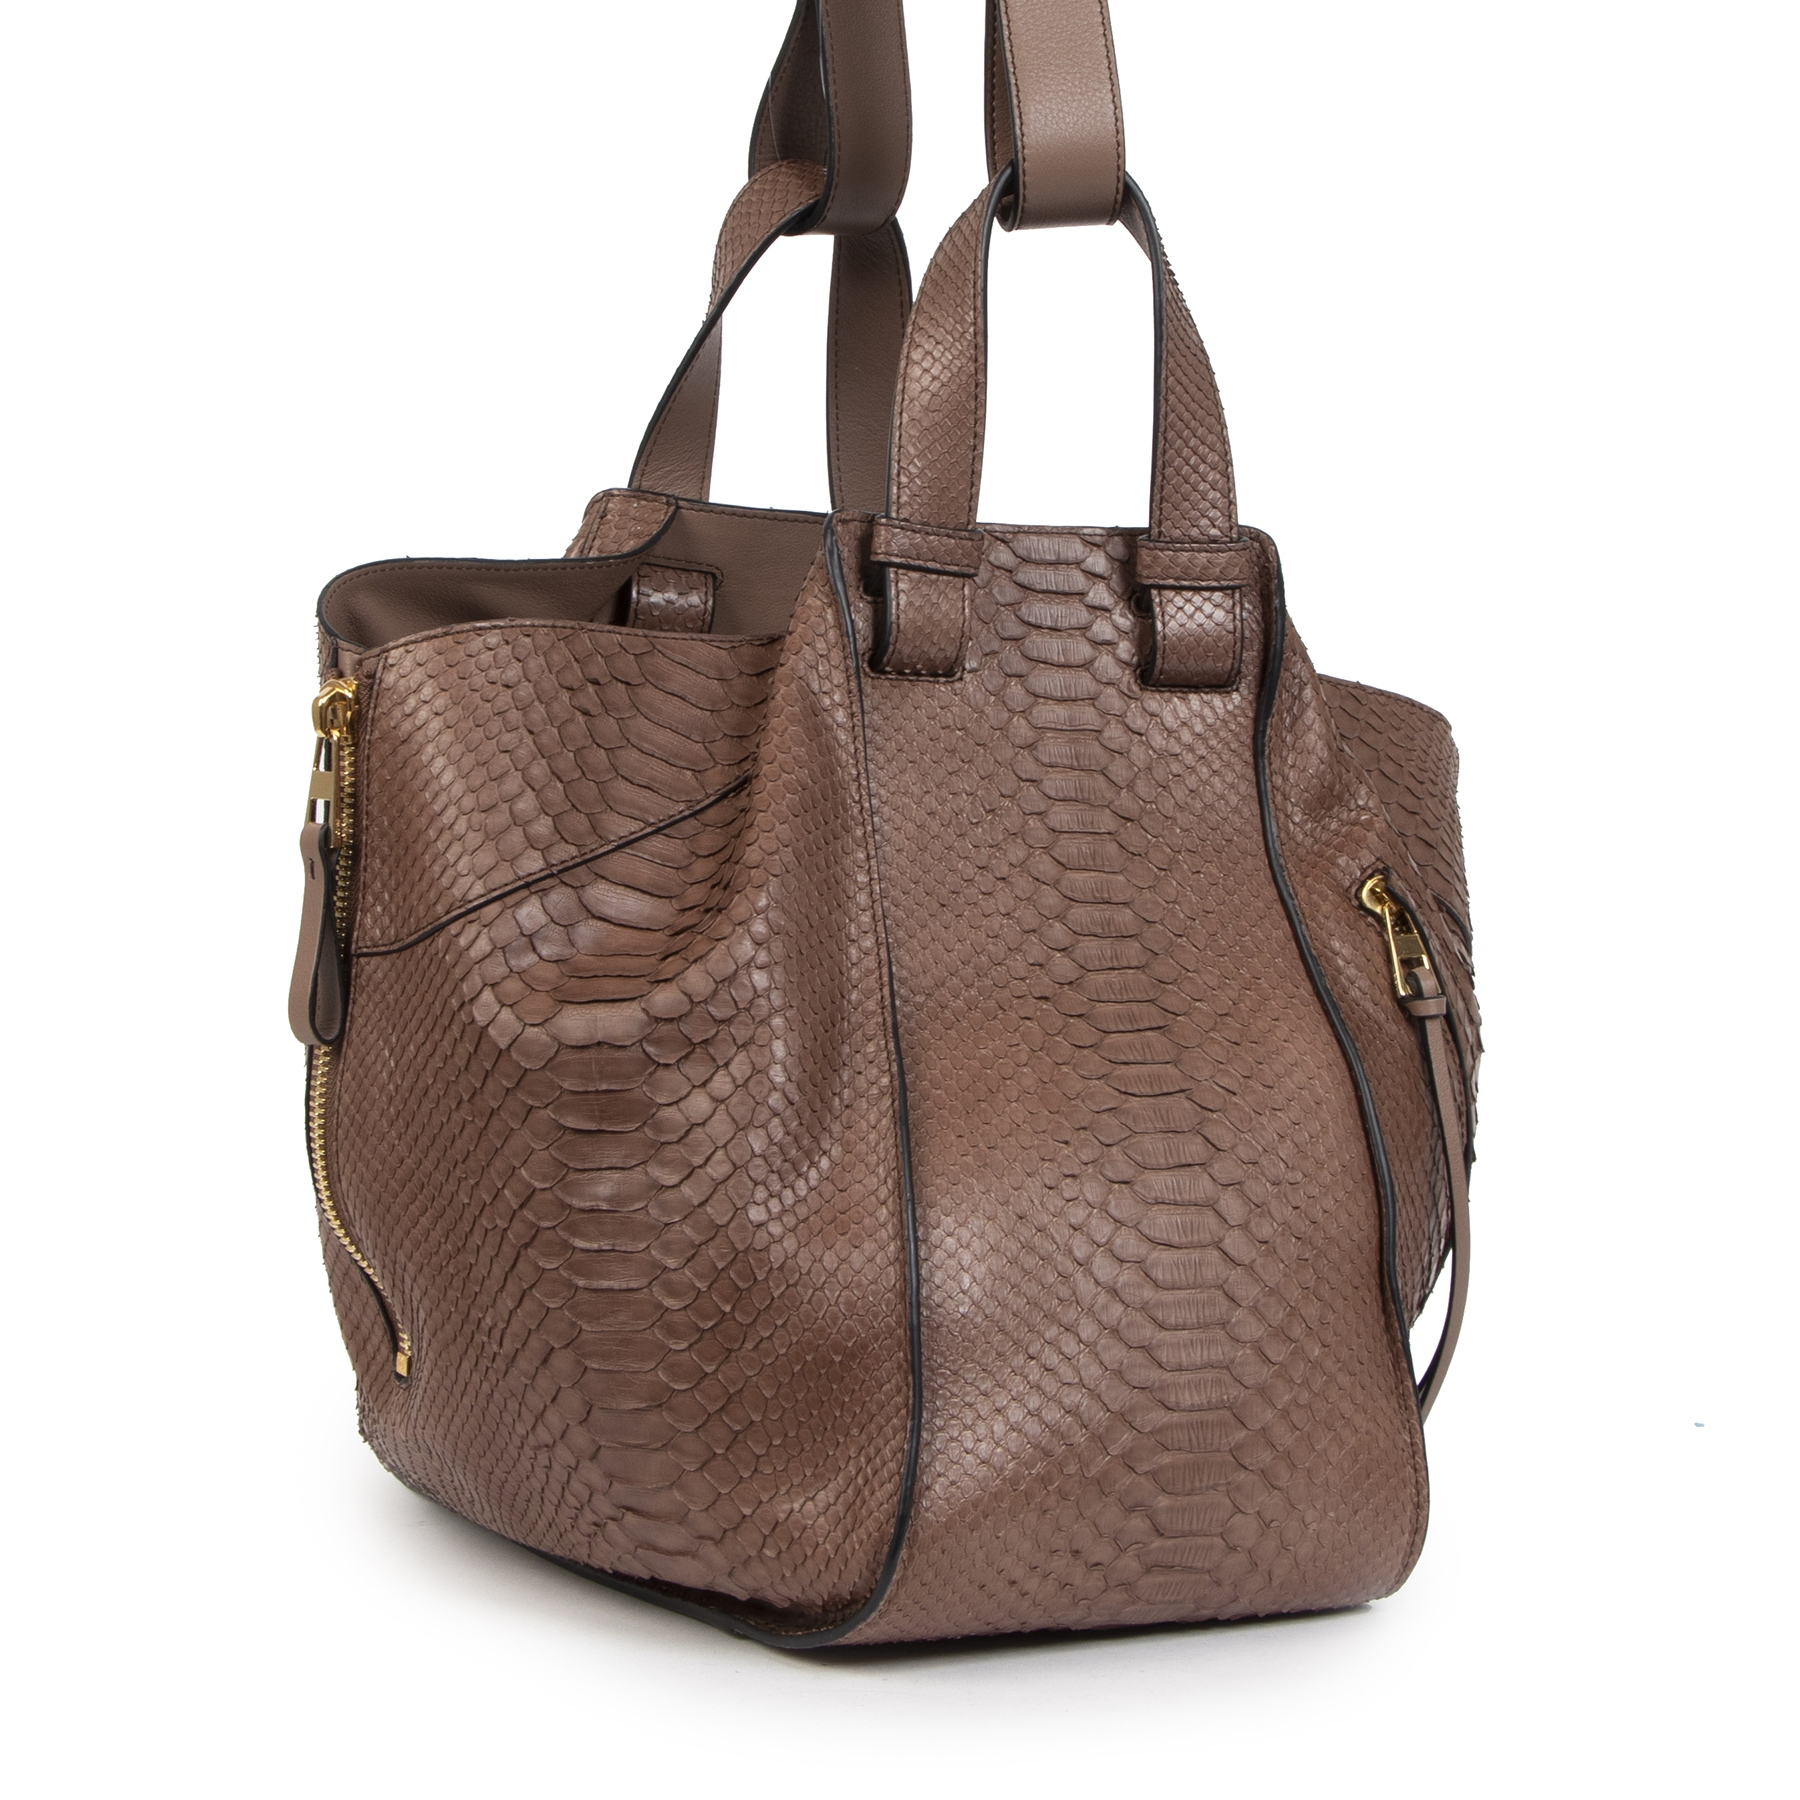 Buy authentic secondhand Loewe Hammock Brown Python Large Tote Bag  at the right price at LabelLOV vintage webshop. Safe and secure online shopping. Koop authentieke tweedehands Loewe Hammock Brown Python Large Tote Bag met de juiste prijs bij LabelLOV